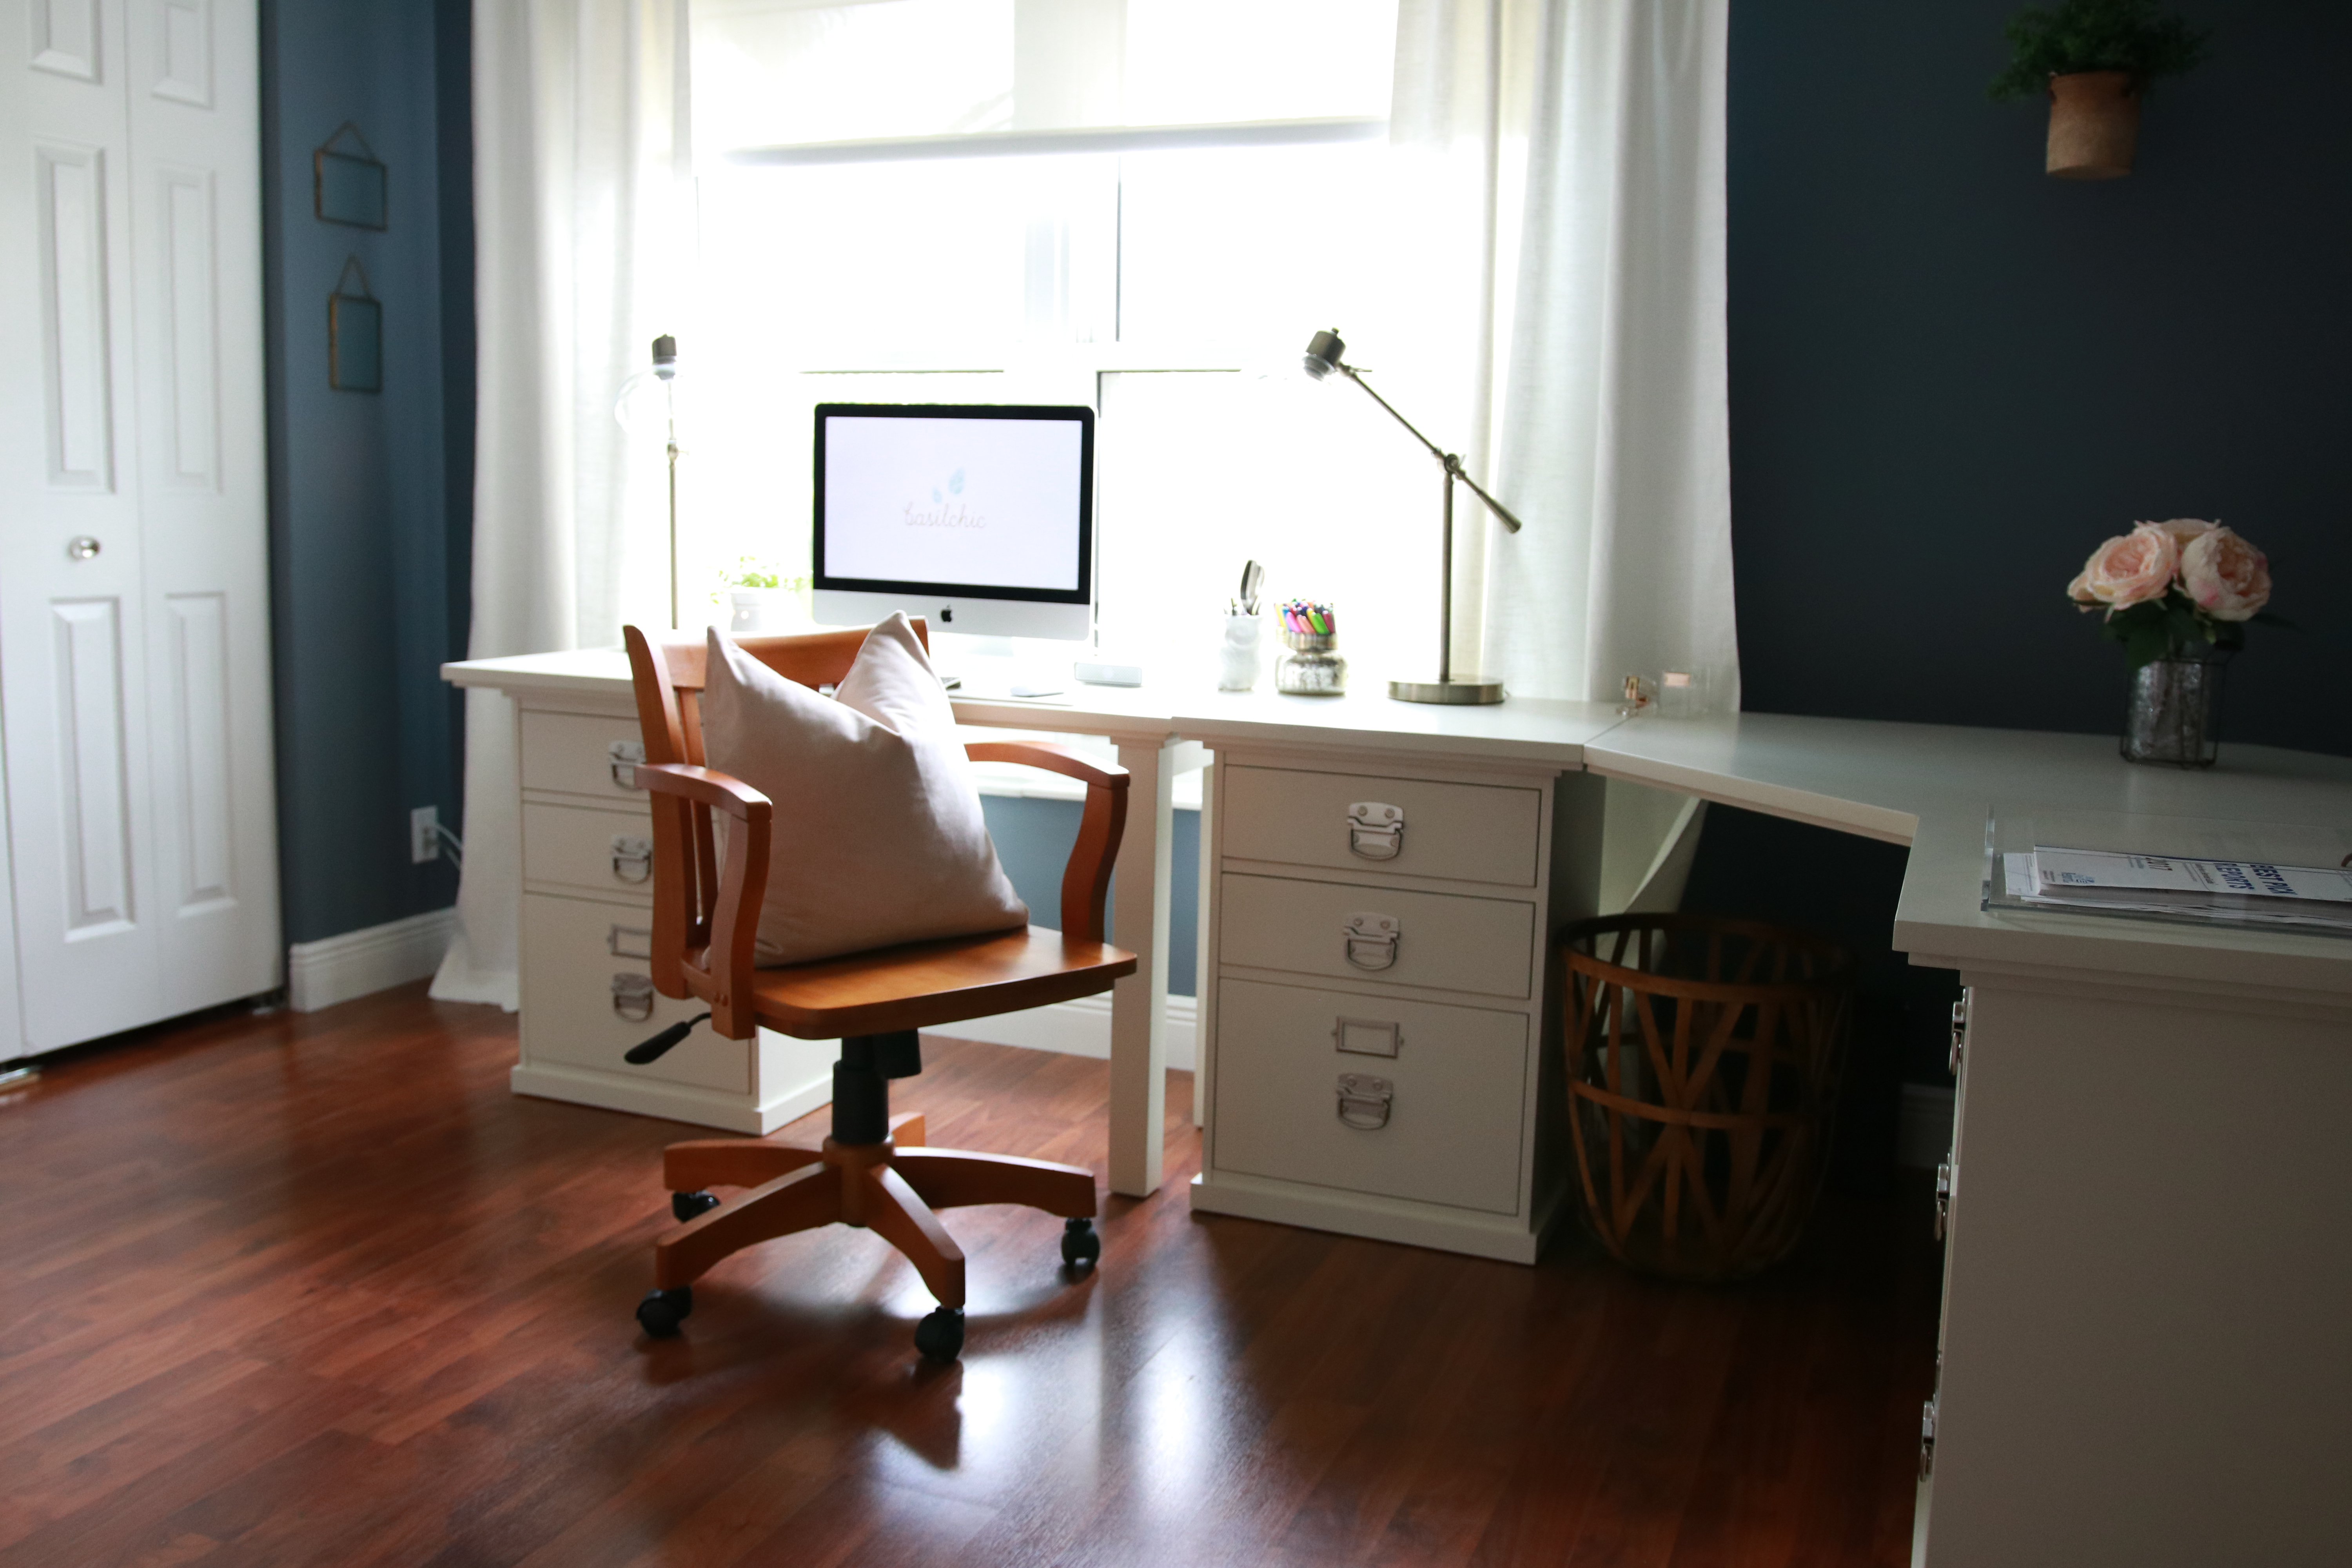 Home Office Design – Office Decor Ideas (Part 1 of 4 in Office Organization Series)